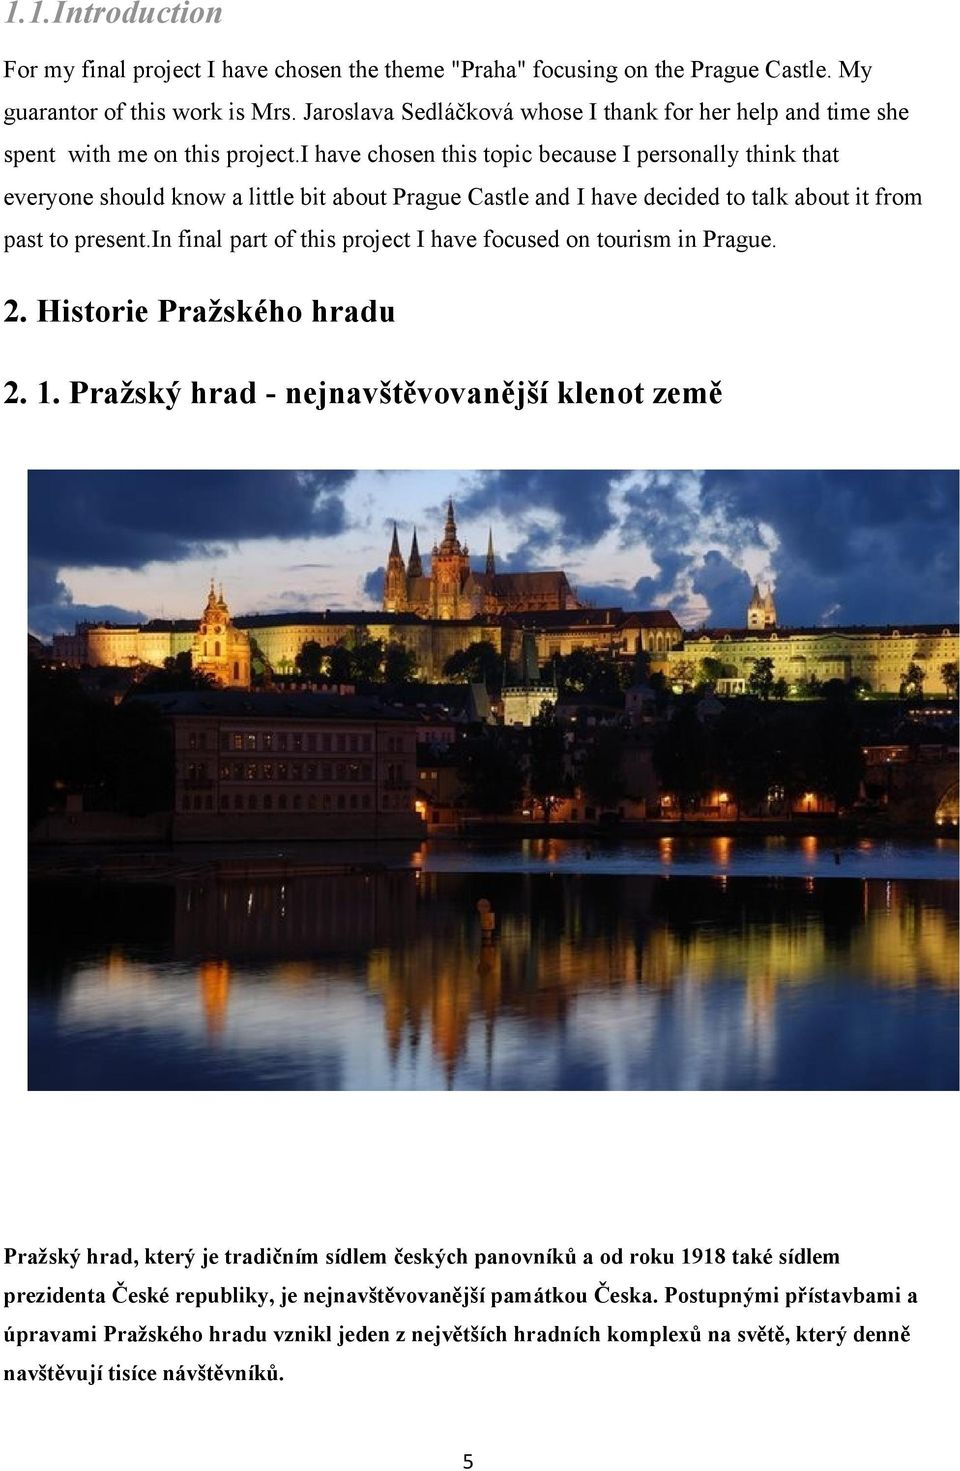 i have chosen this topic because I personally think that everyone should know a little bit about Prague Castle and I have decided to talk about it from past to present.